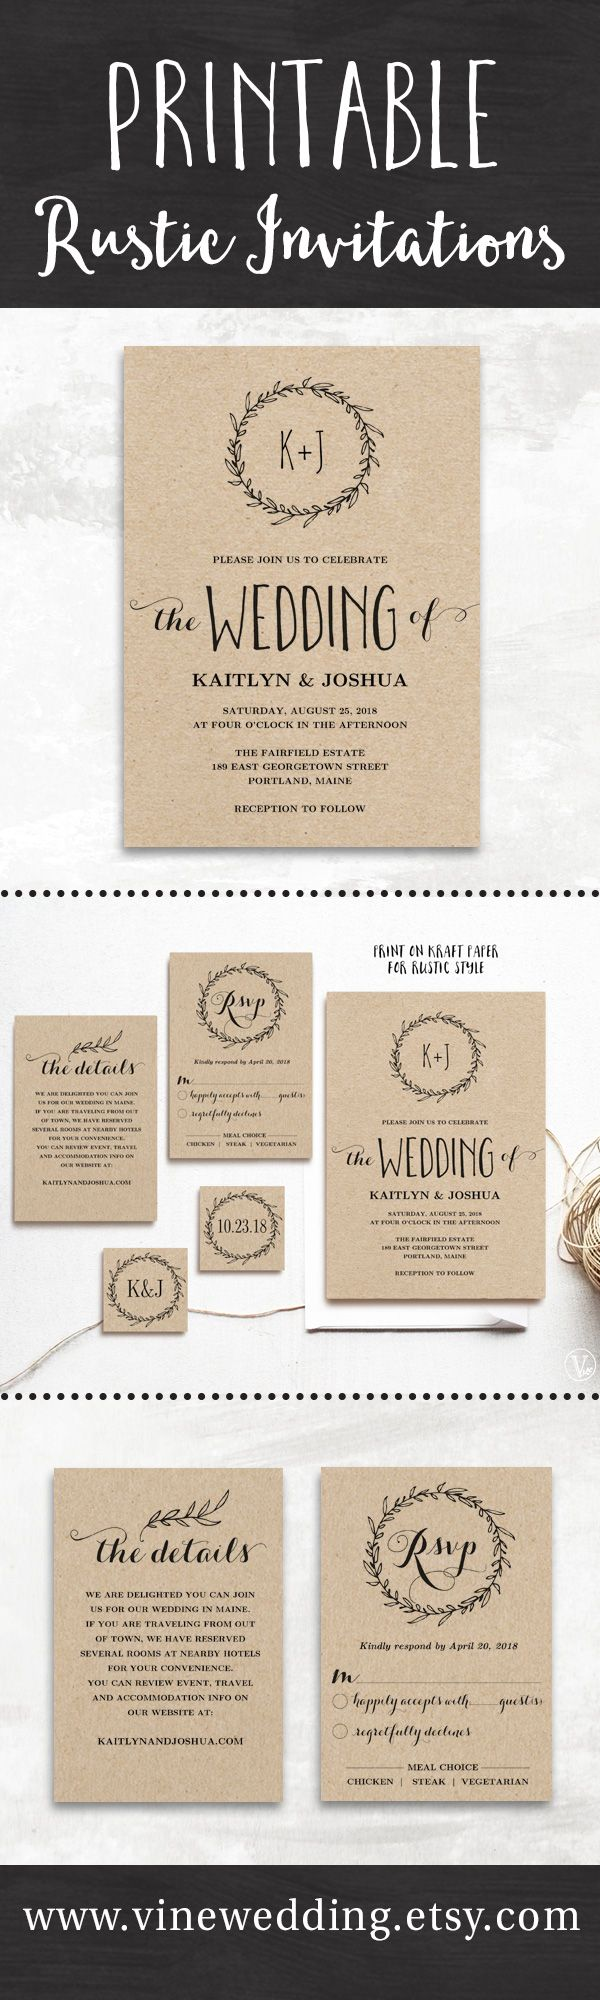 Best 25 Wedding invitation design ideas ideas – Create Invitations Online Free No Download